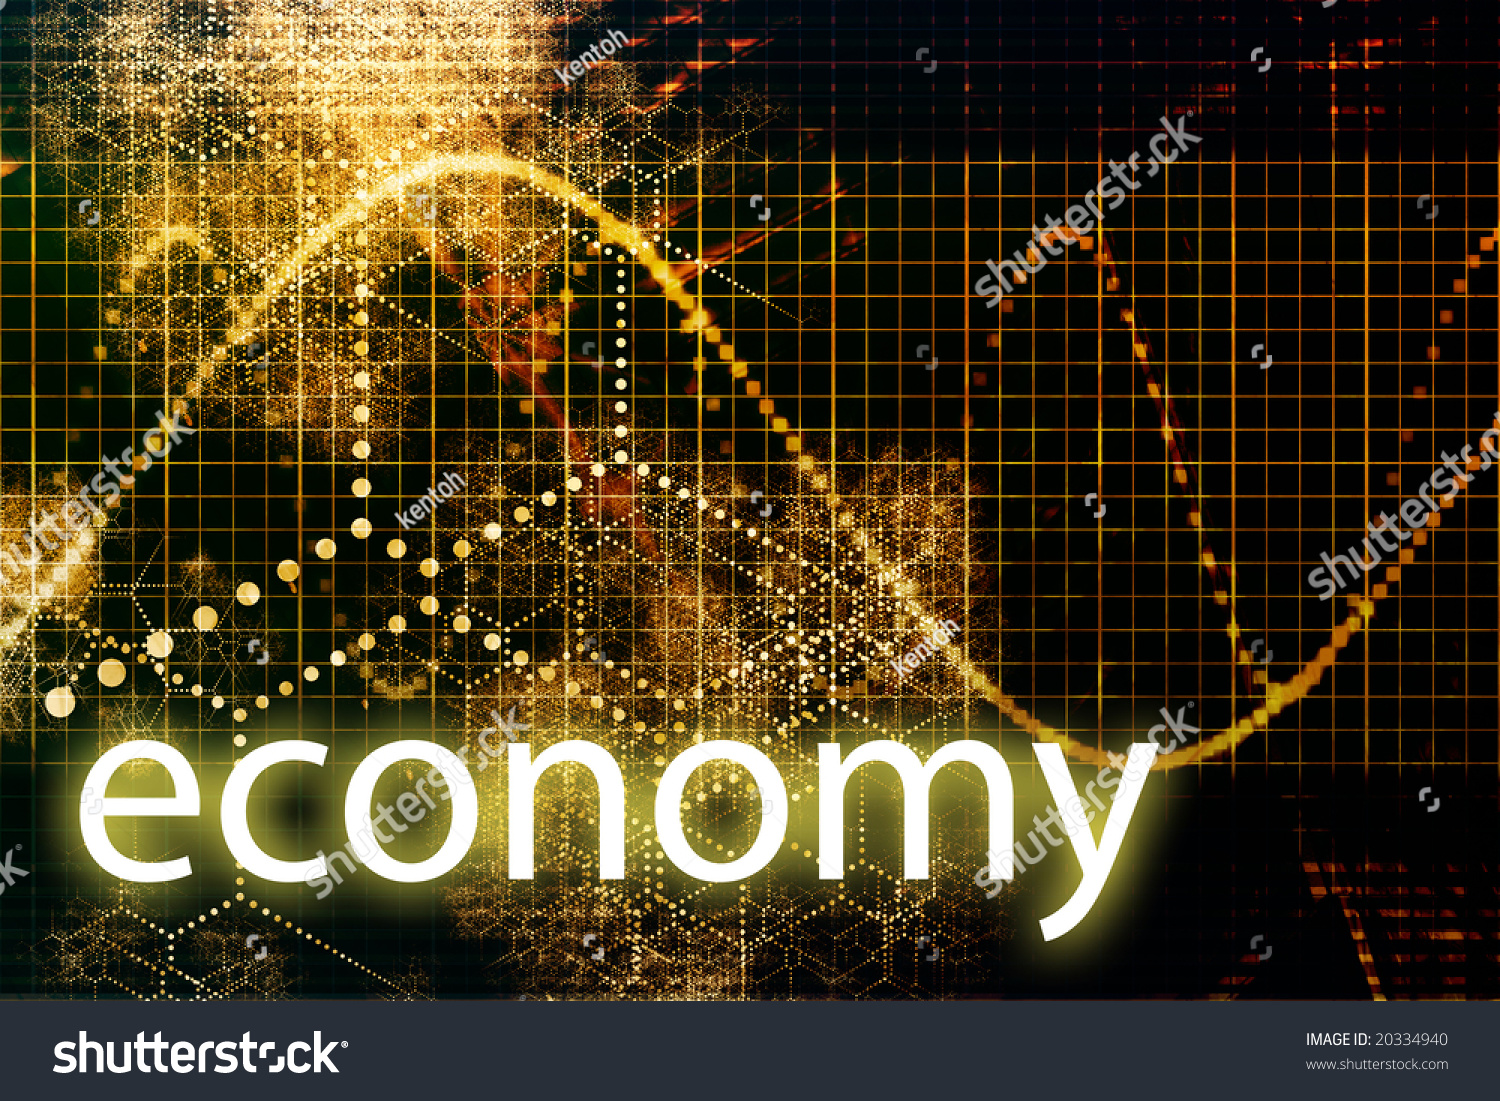 economy abstract technology concept wallpaper background